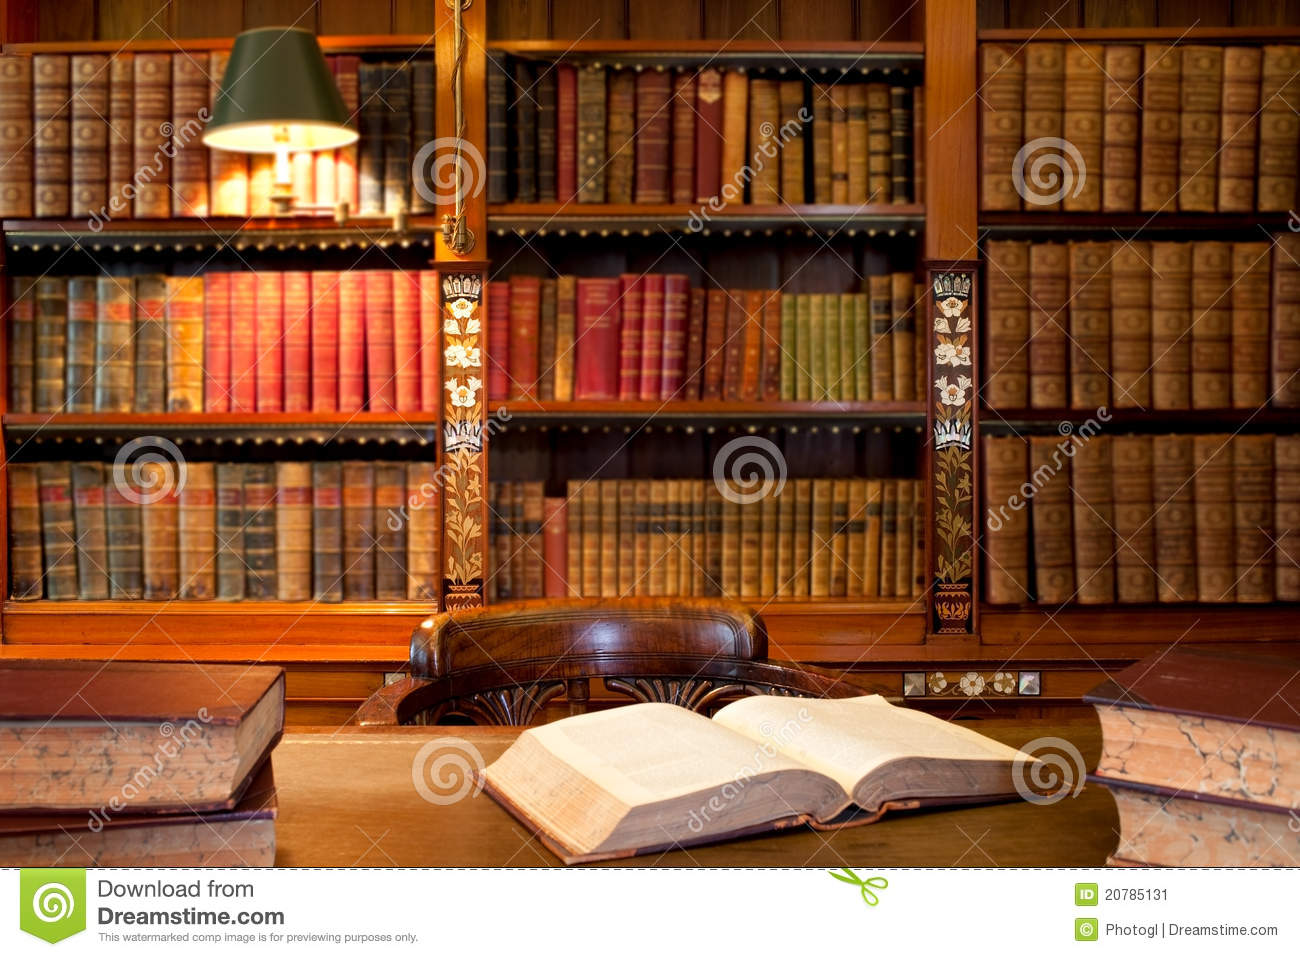 Download Books at the library stock image. Image of interior, chair - 20785131